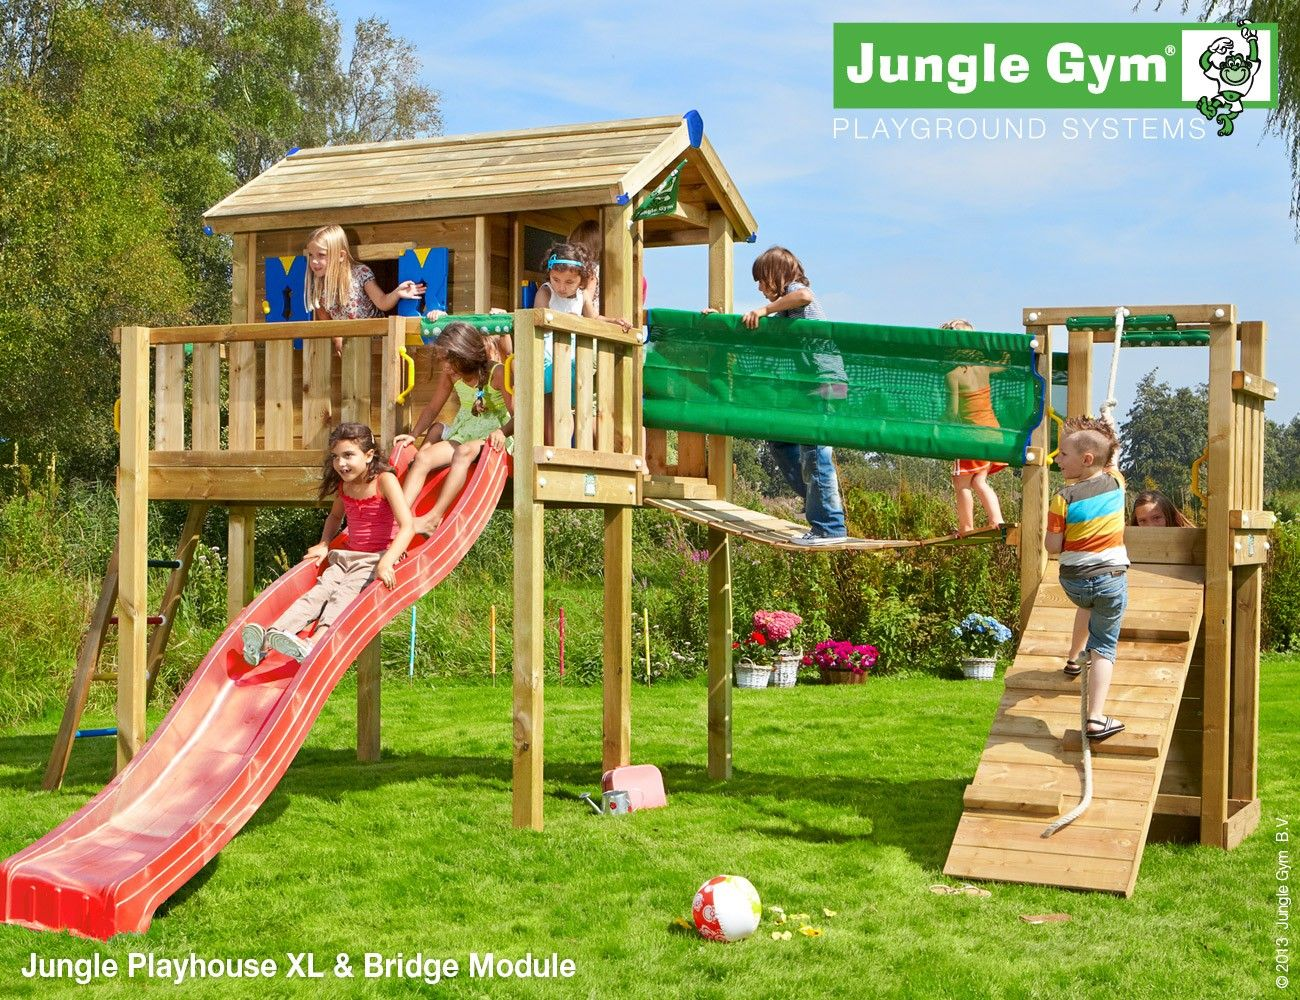 Sehr Play centres additions by Jungle Gym - Bridge Module | Tree house  AF99